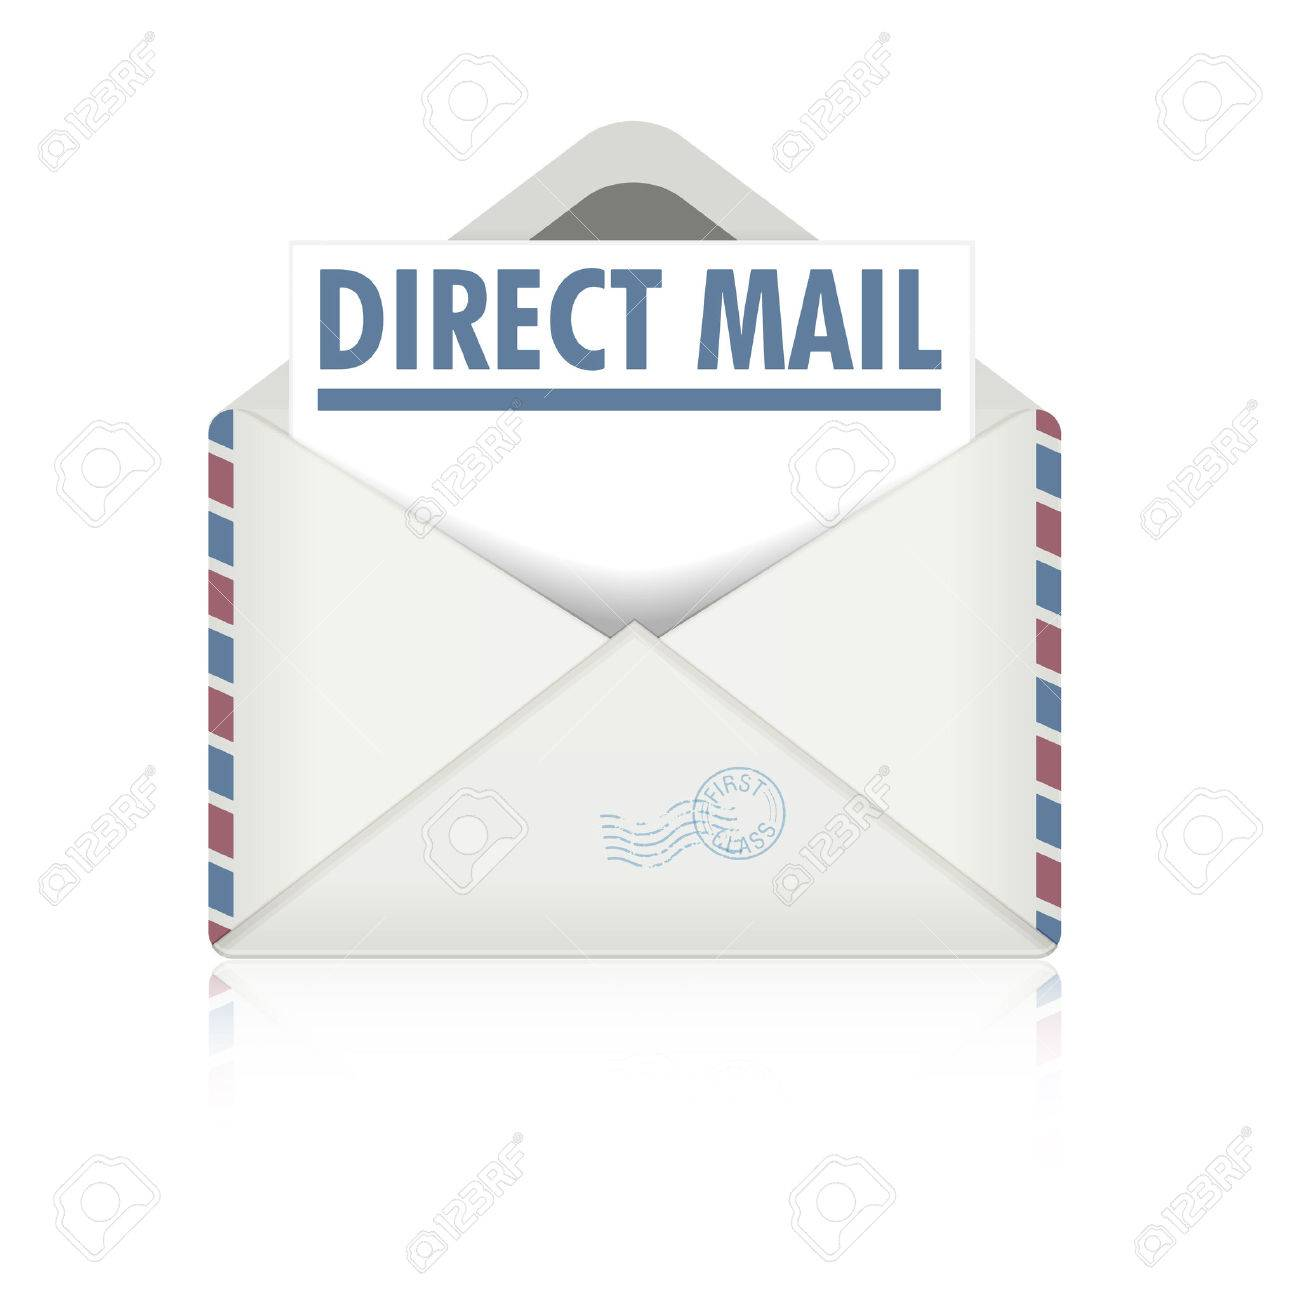 Detailed Illustration Of An Open Envelope With Direct Mail Letter